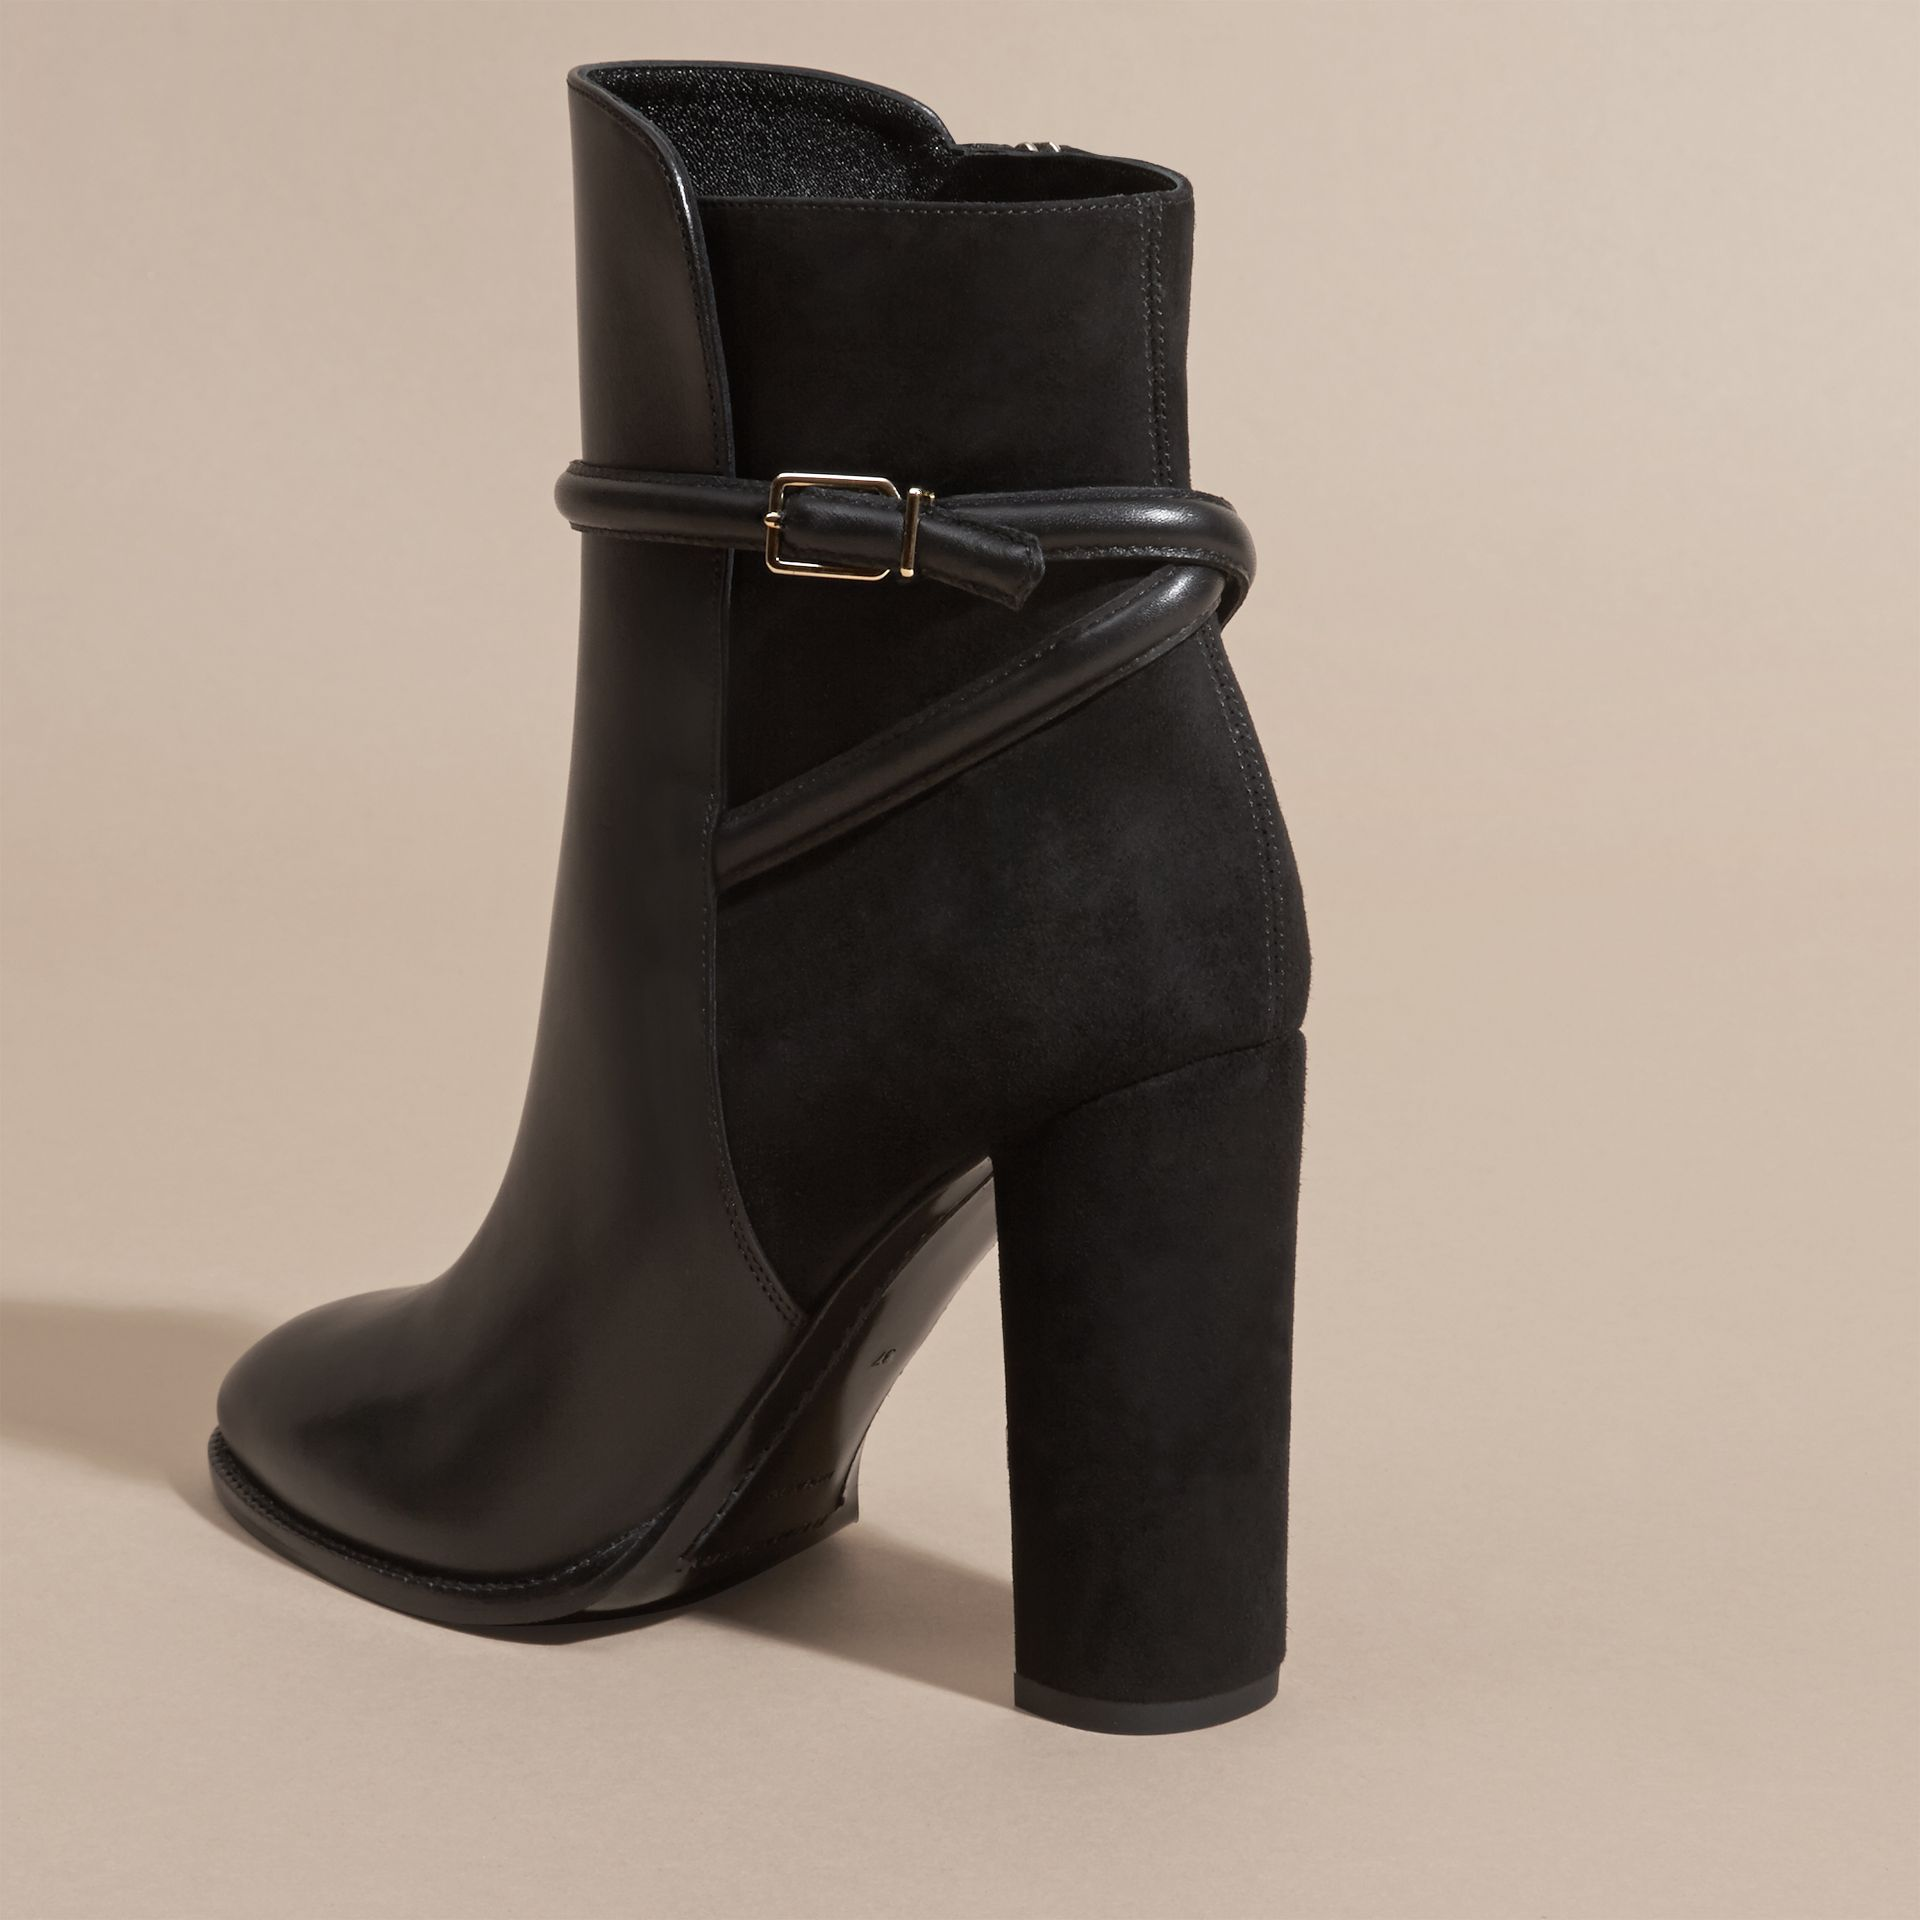 Black Strap Detail Leather and Suede Ankle Boots Black - gallery image 4